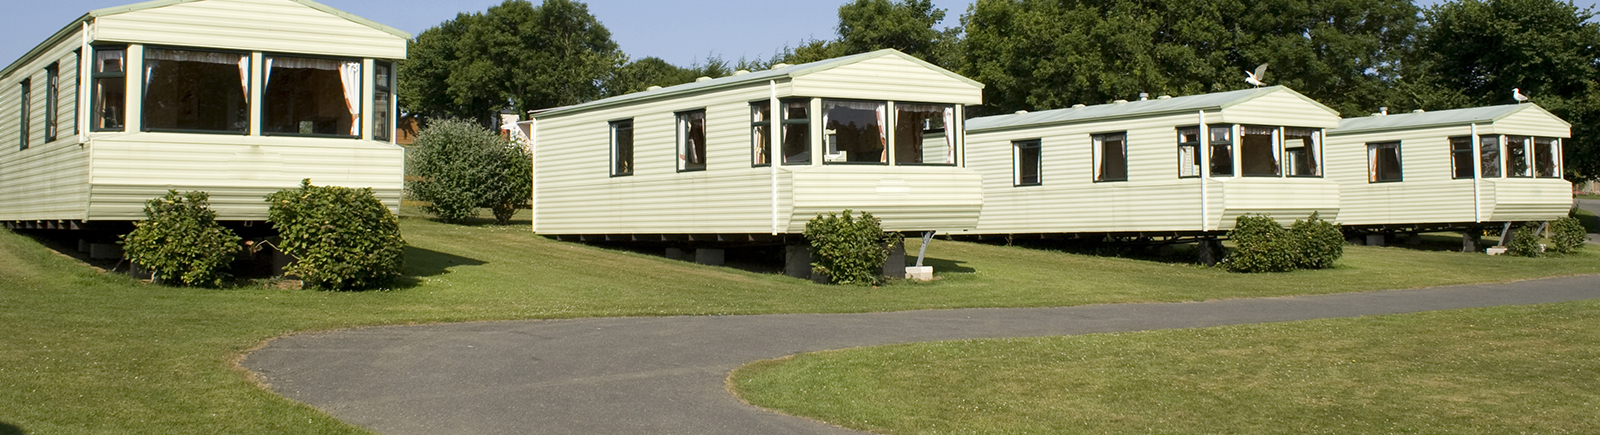 Owning your own Holiday Home is more affordable than you may think.